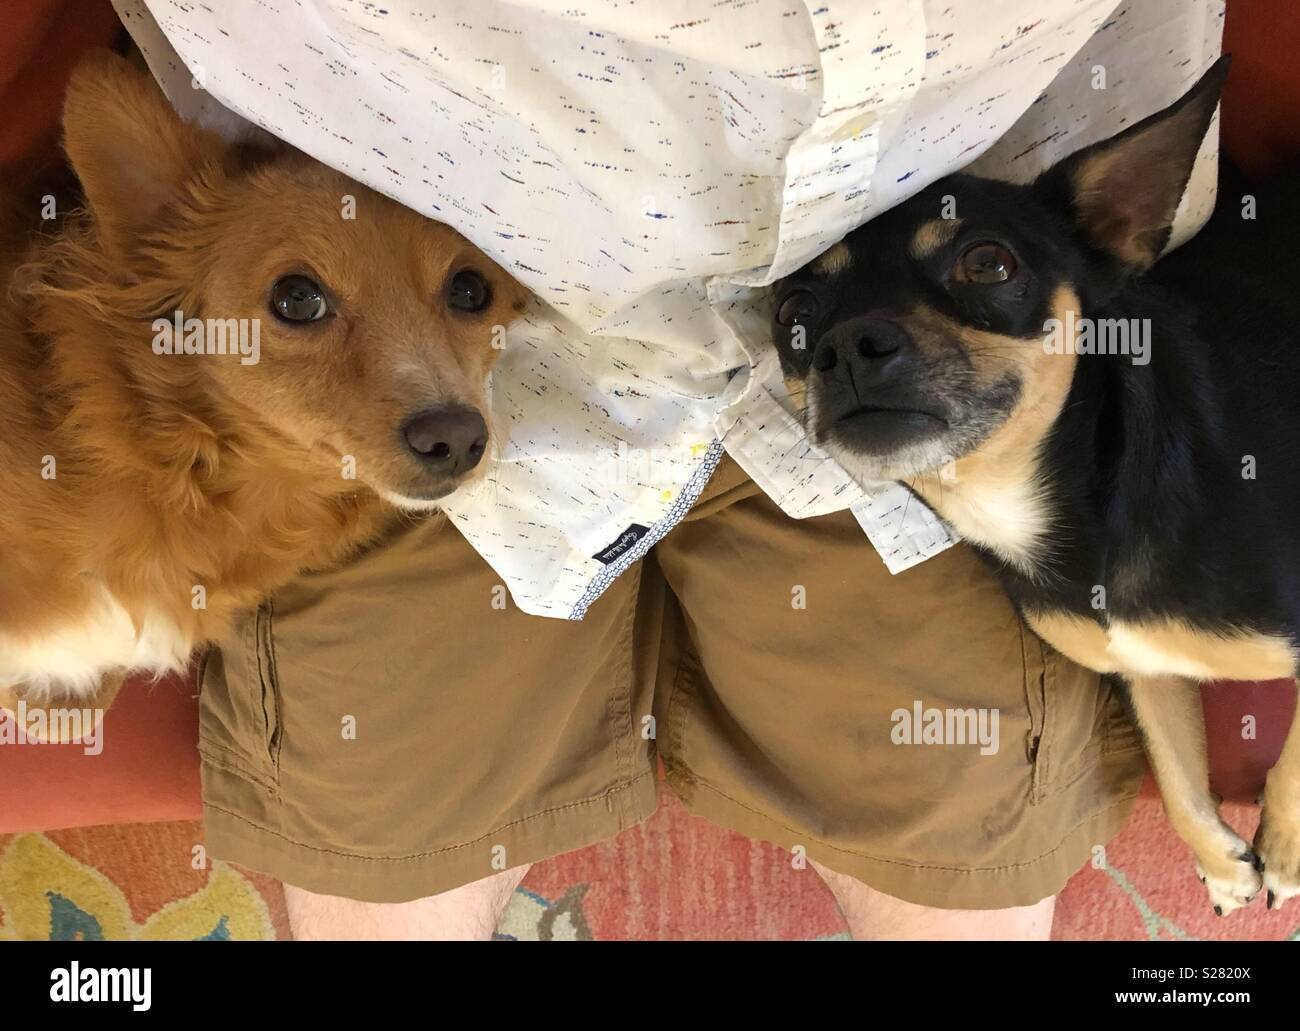 Two dogs in man's lap - Stock Image